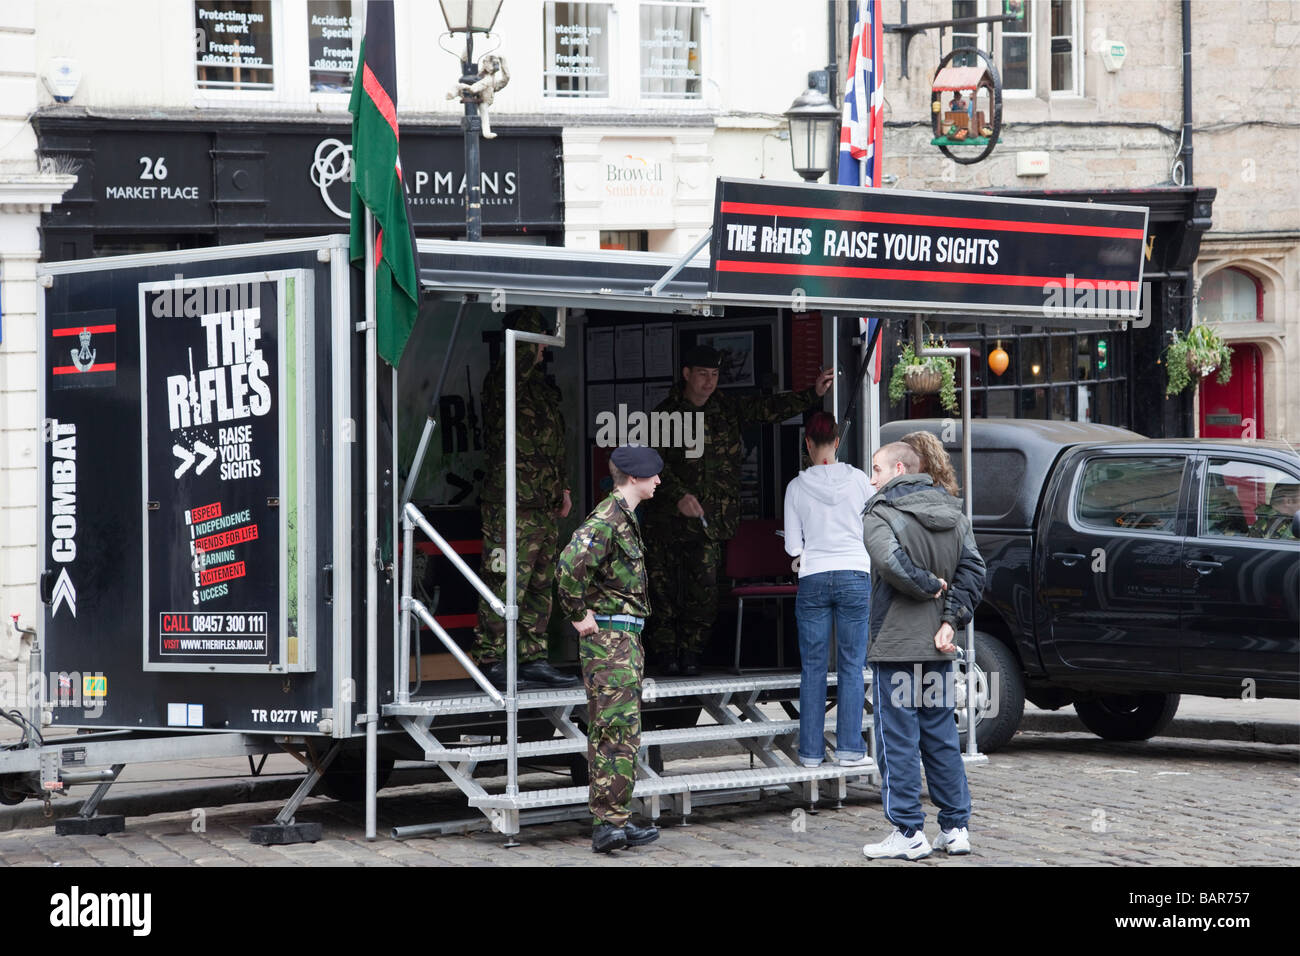 England UK Europe Army recruitment stand for The Rifles regiment with young people enquiring - Stock Image